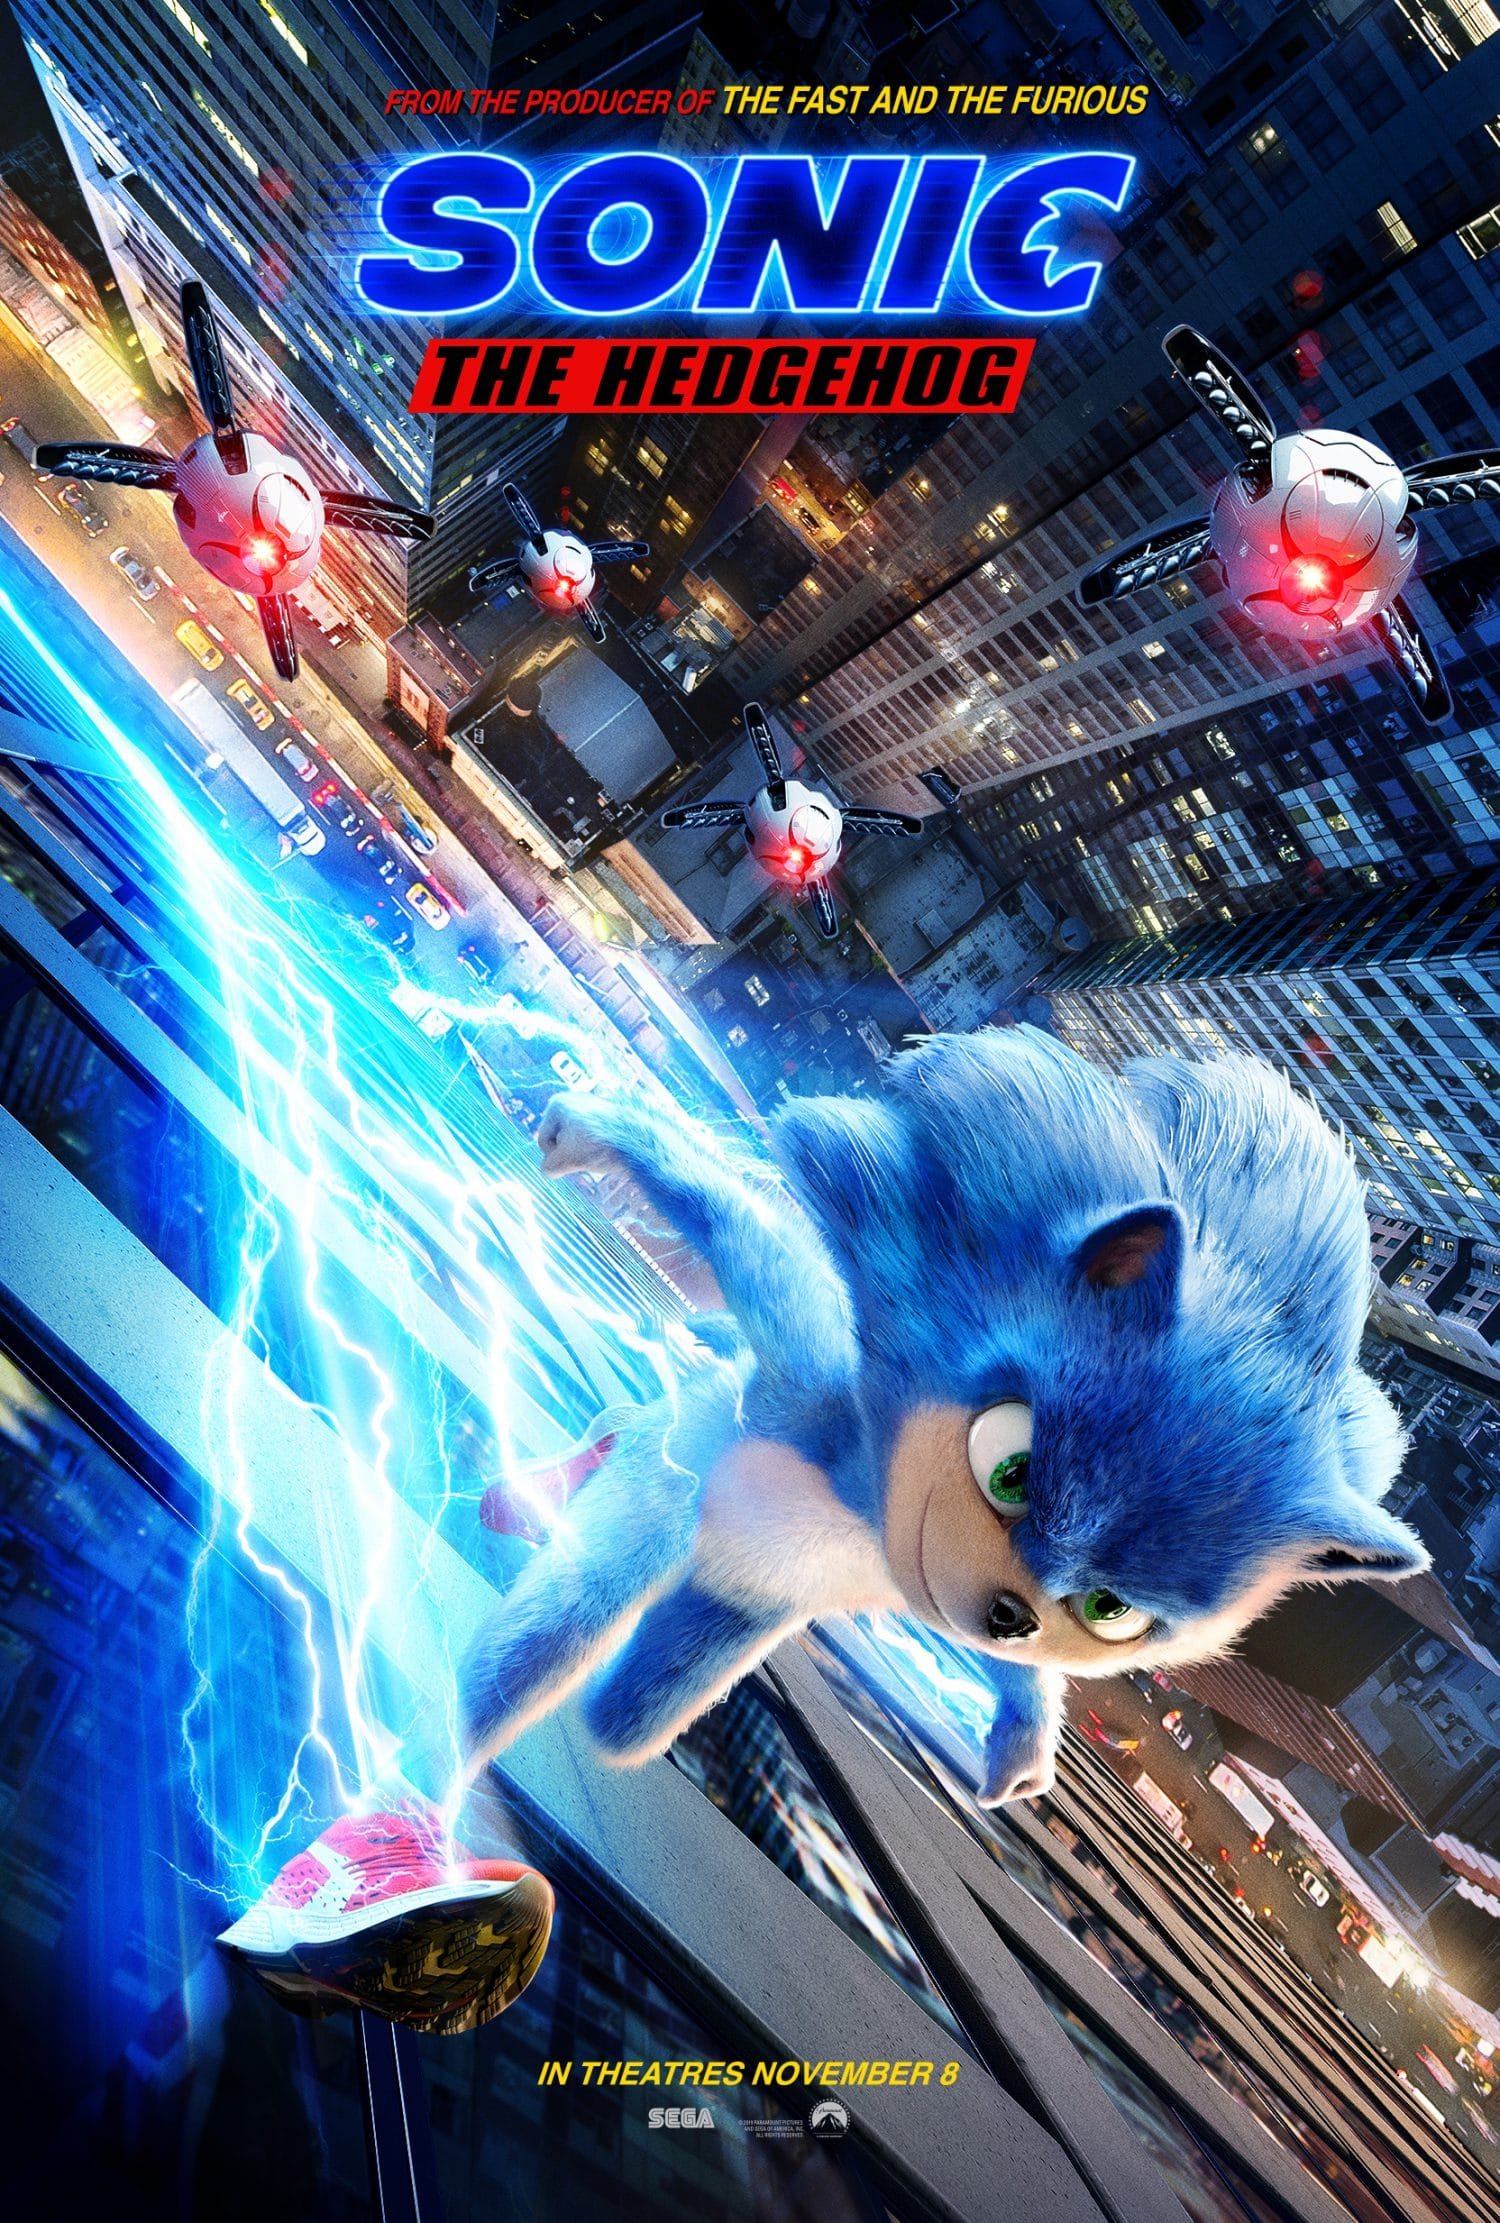 Take a look at the Sonic the Hedgehog movie poster.